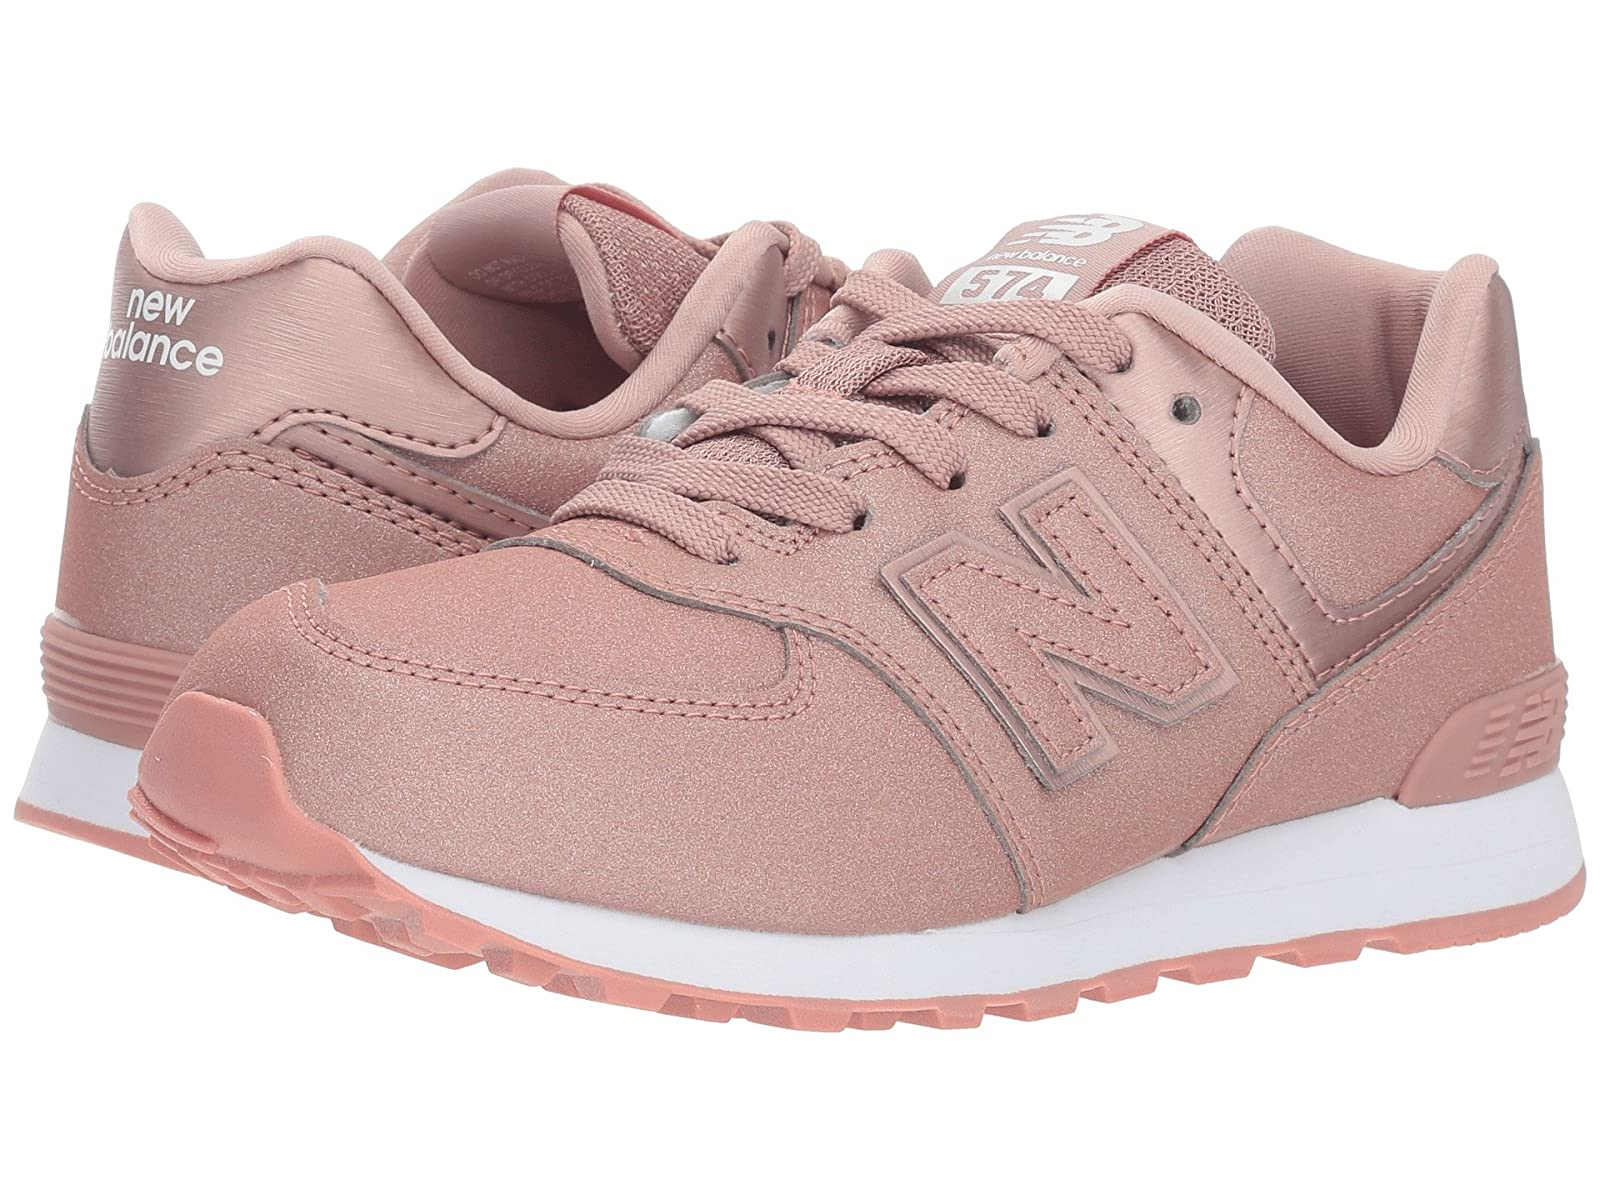 New Balance Kids GC574v1 (Big Kid)Atmospheric grades have affordable shoes